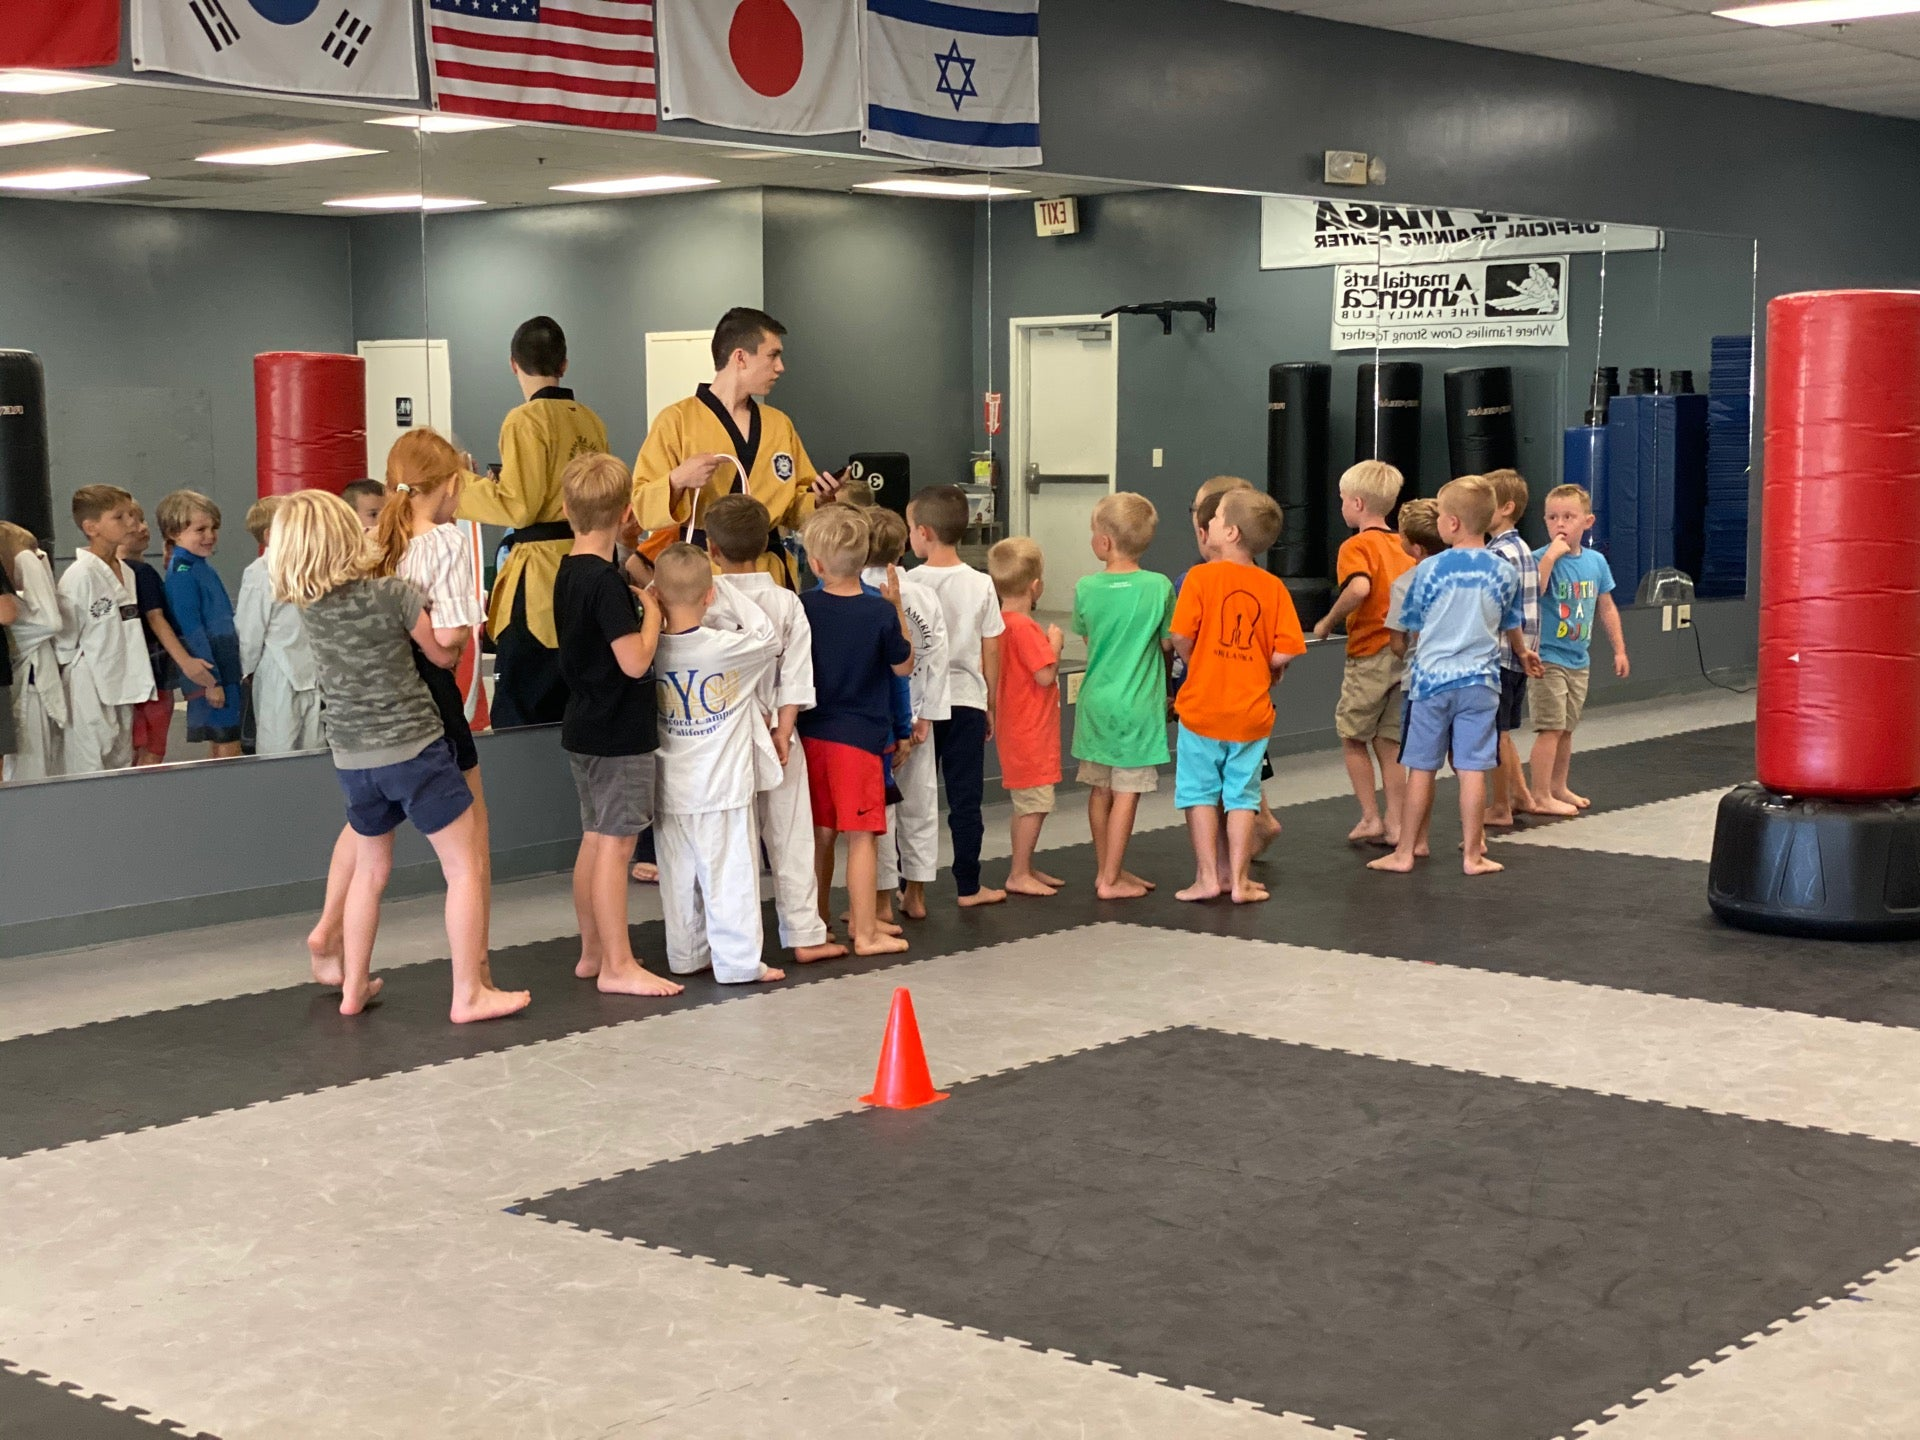 Checked in at Martial Arts America